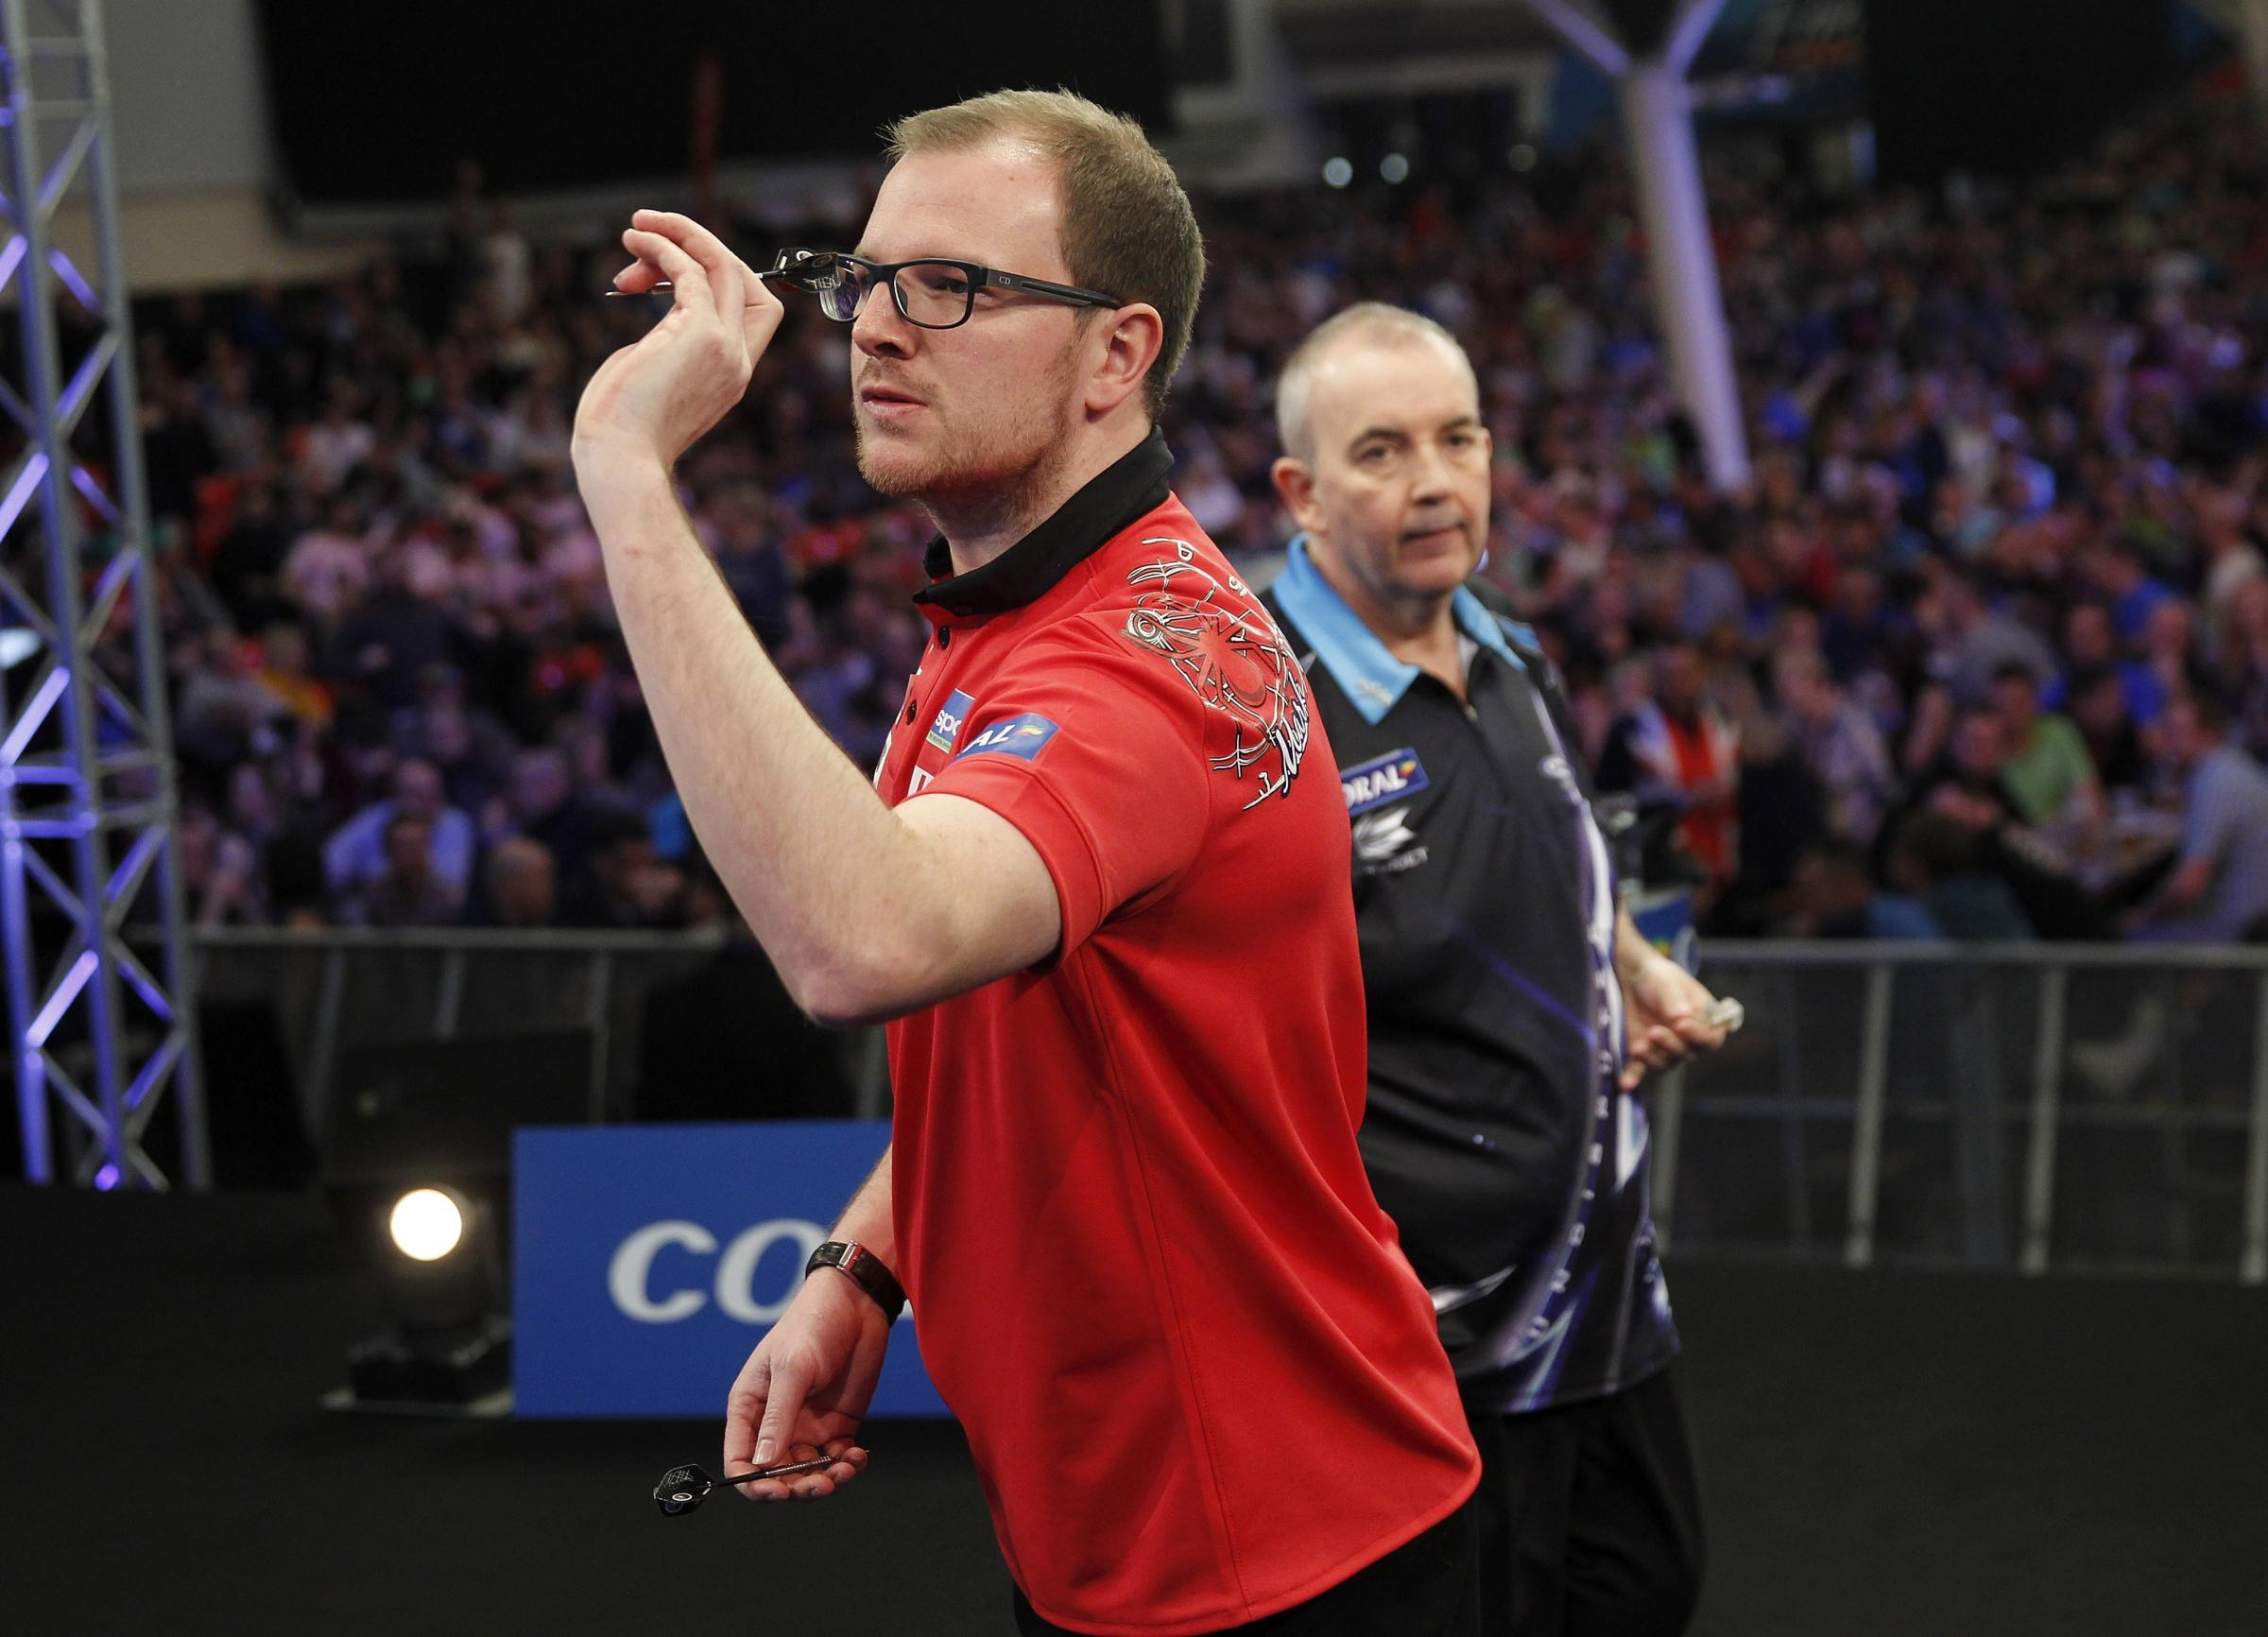 Mark Webster taking on Phil Taylor in the quarter-finals of 2016 UK Open. Picture: Lawrence Lustig / PDC